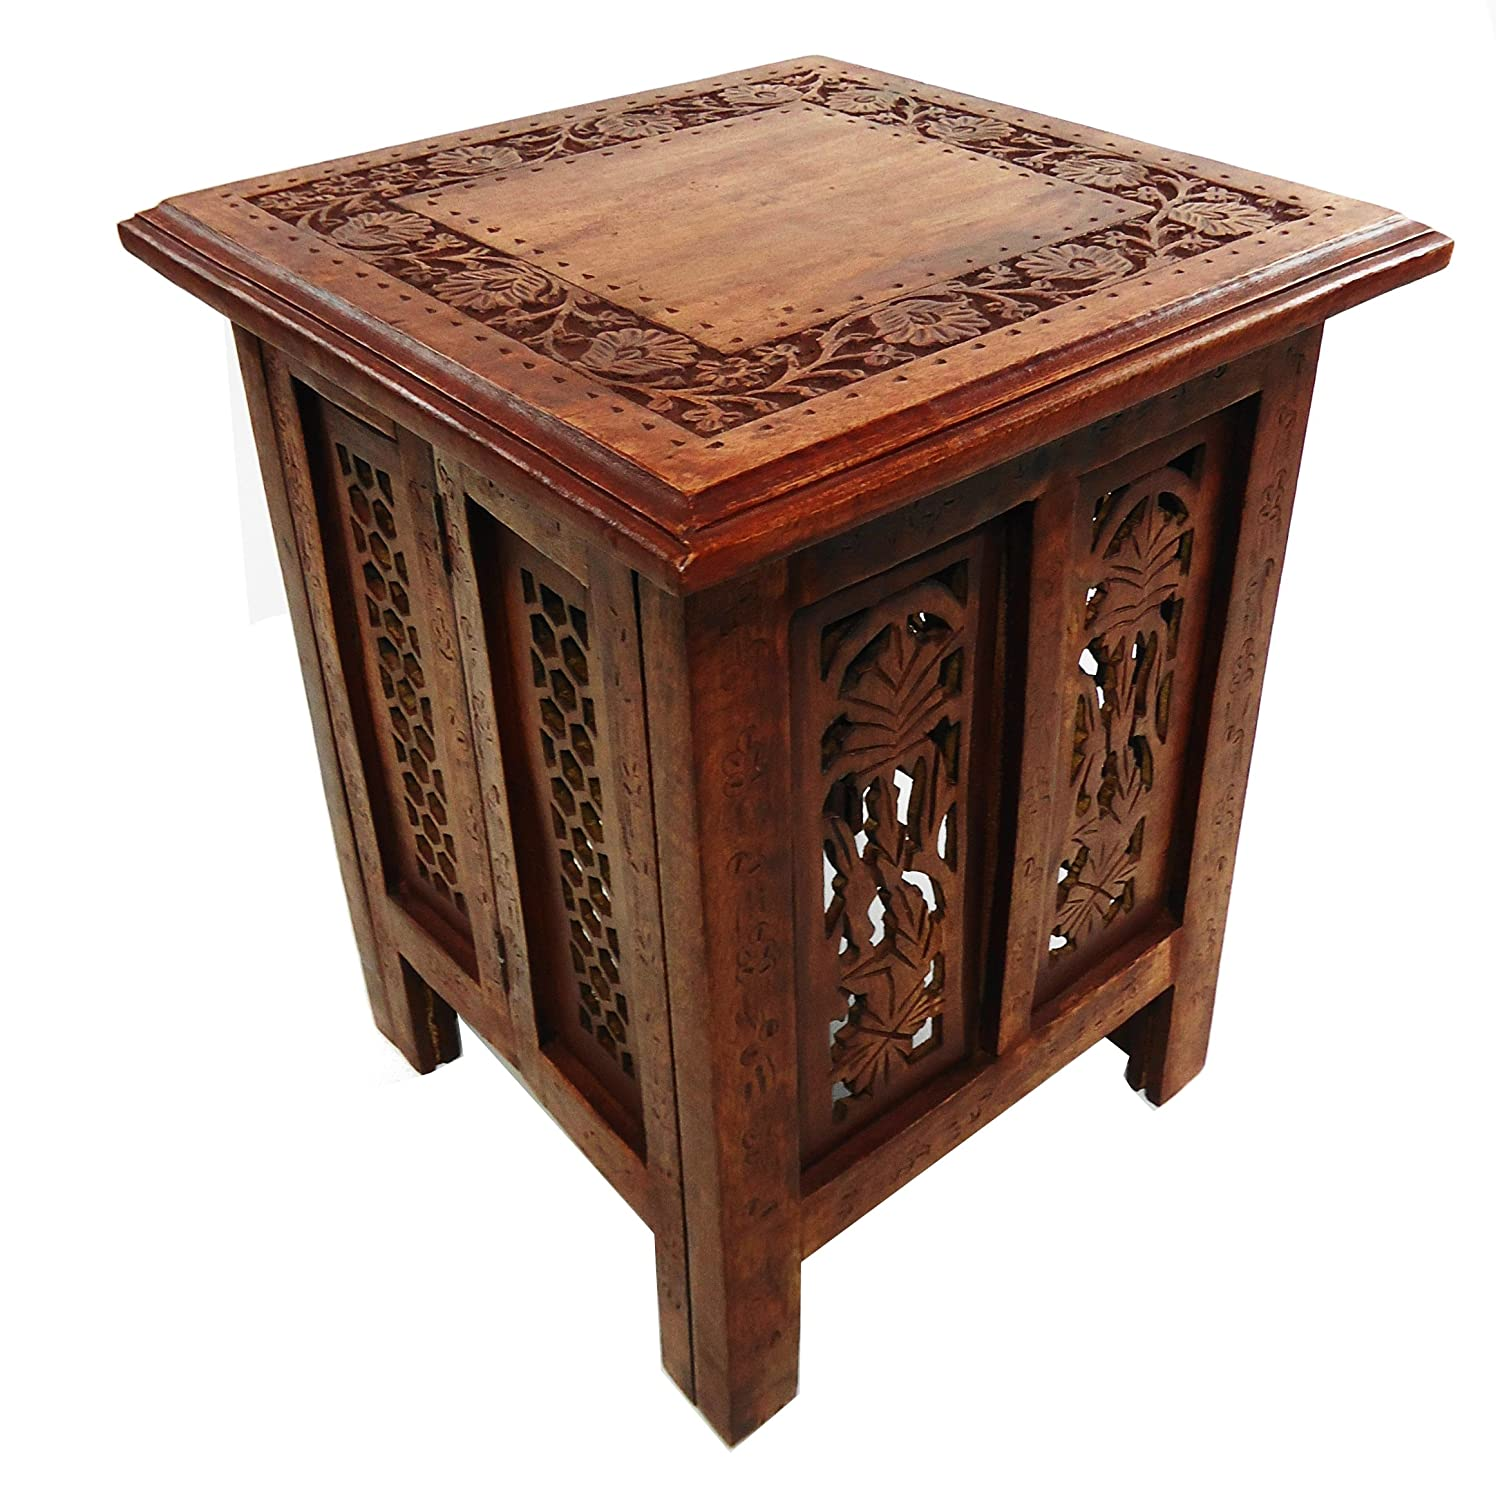 Antique Indian Coffee Tables: Beautiful Antique Effect Hand Carved Indian Wooden Table